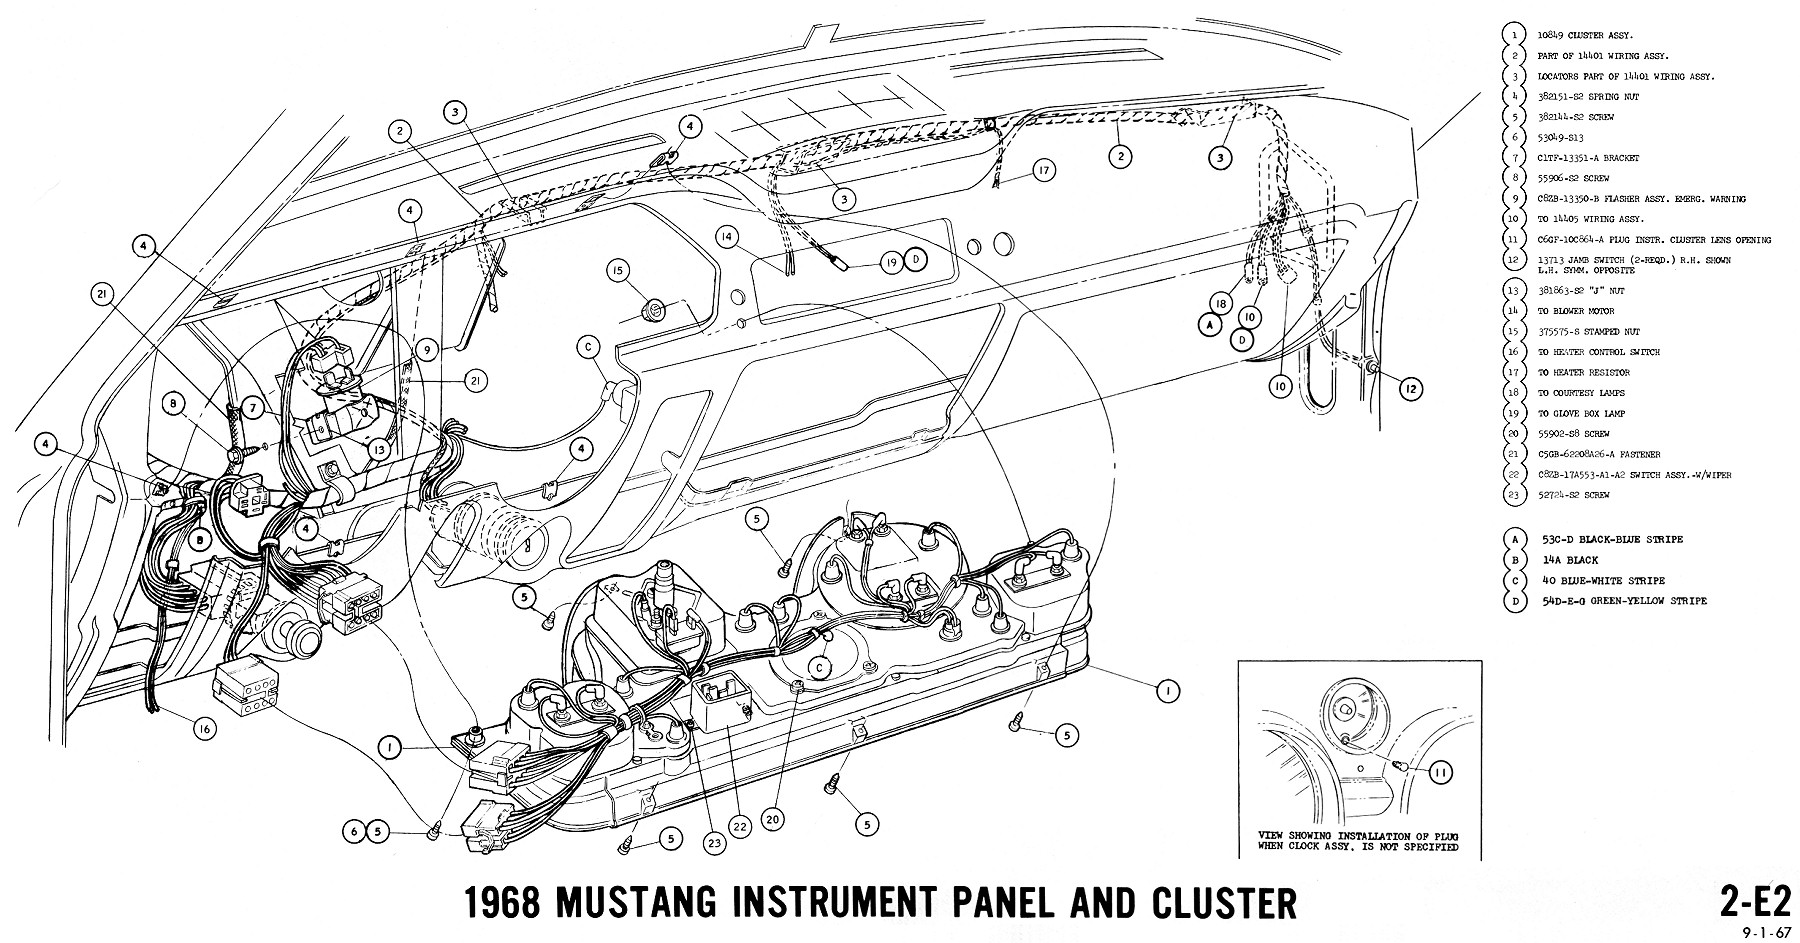 1968 mustang wiring diagram instruments 2 1968 mustang wiring diagrams and vacuum schematics average joe 1968 ford mustang wiring diagram at soozxer.org